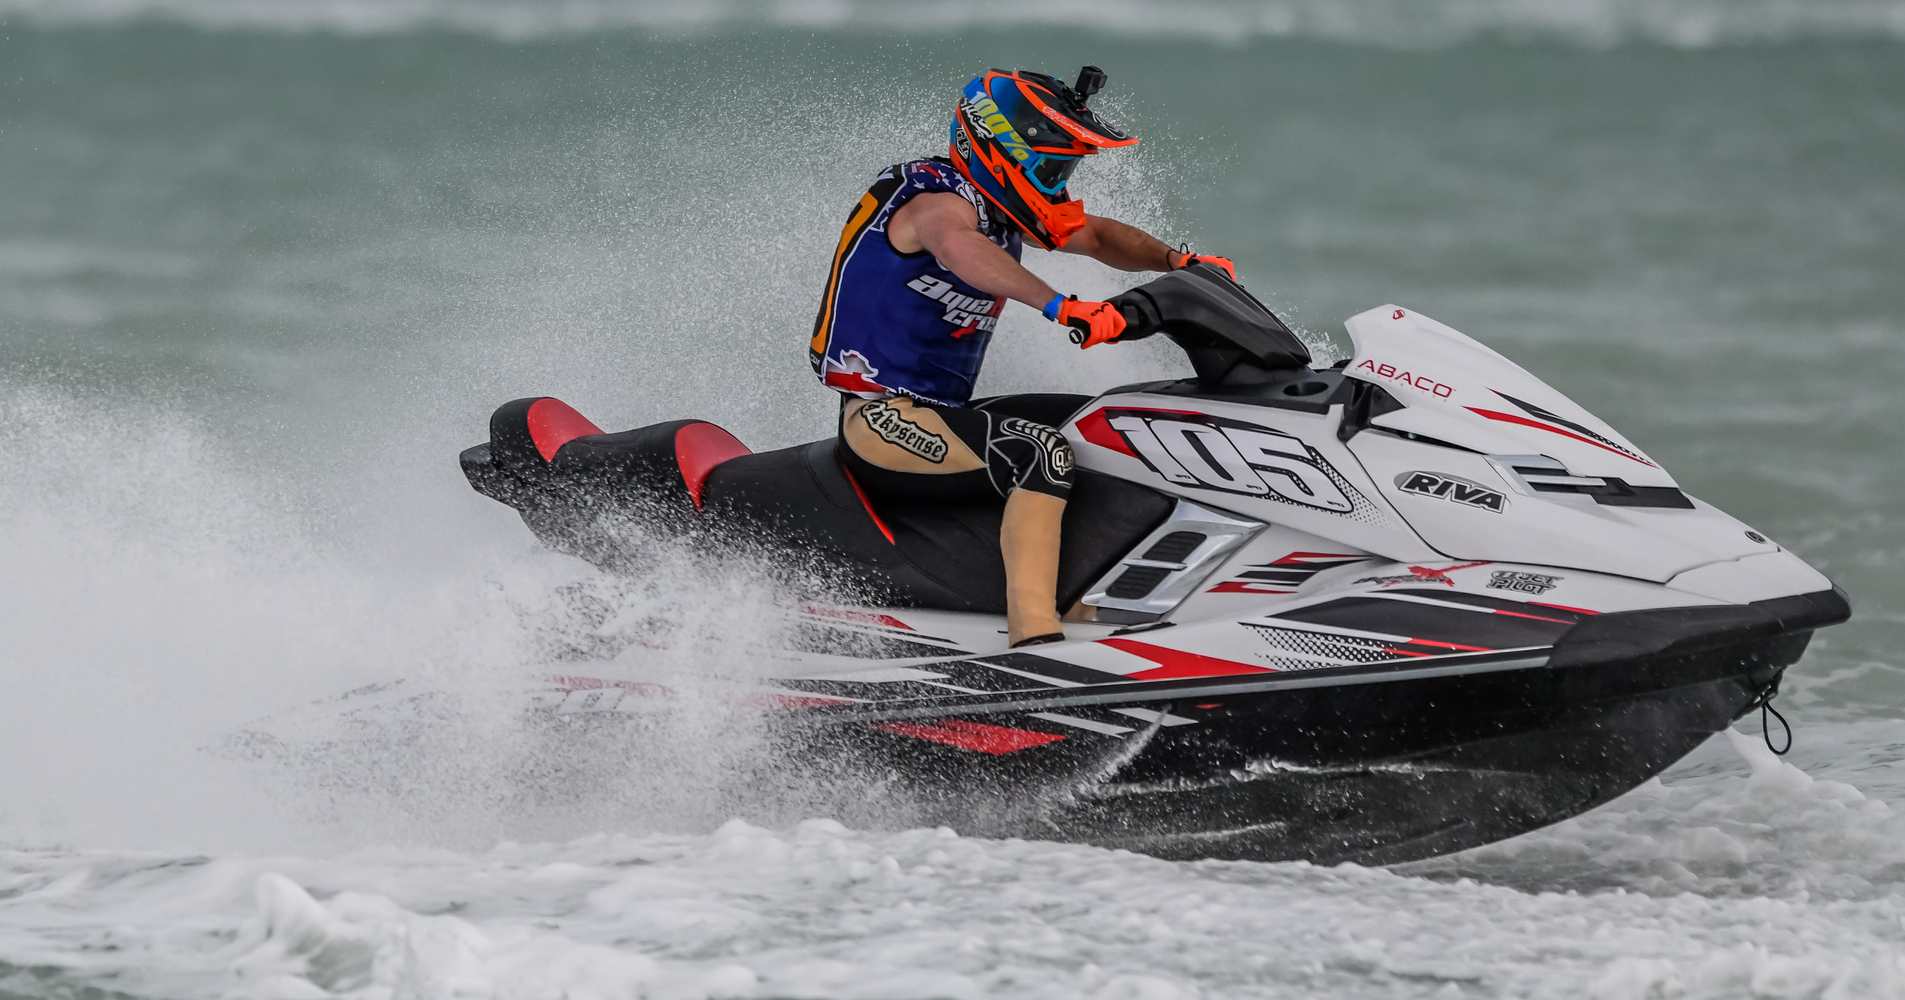 Christian Daly took two victories on Sunday to land the 250 class title